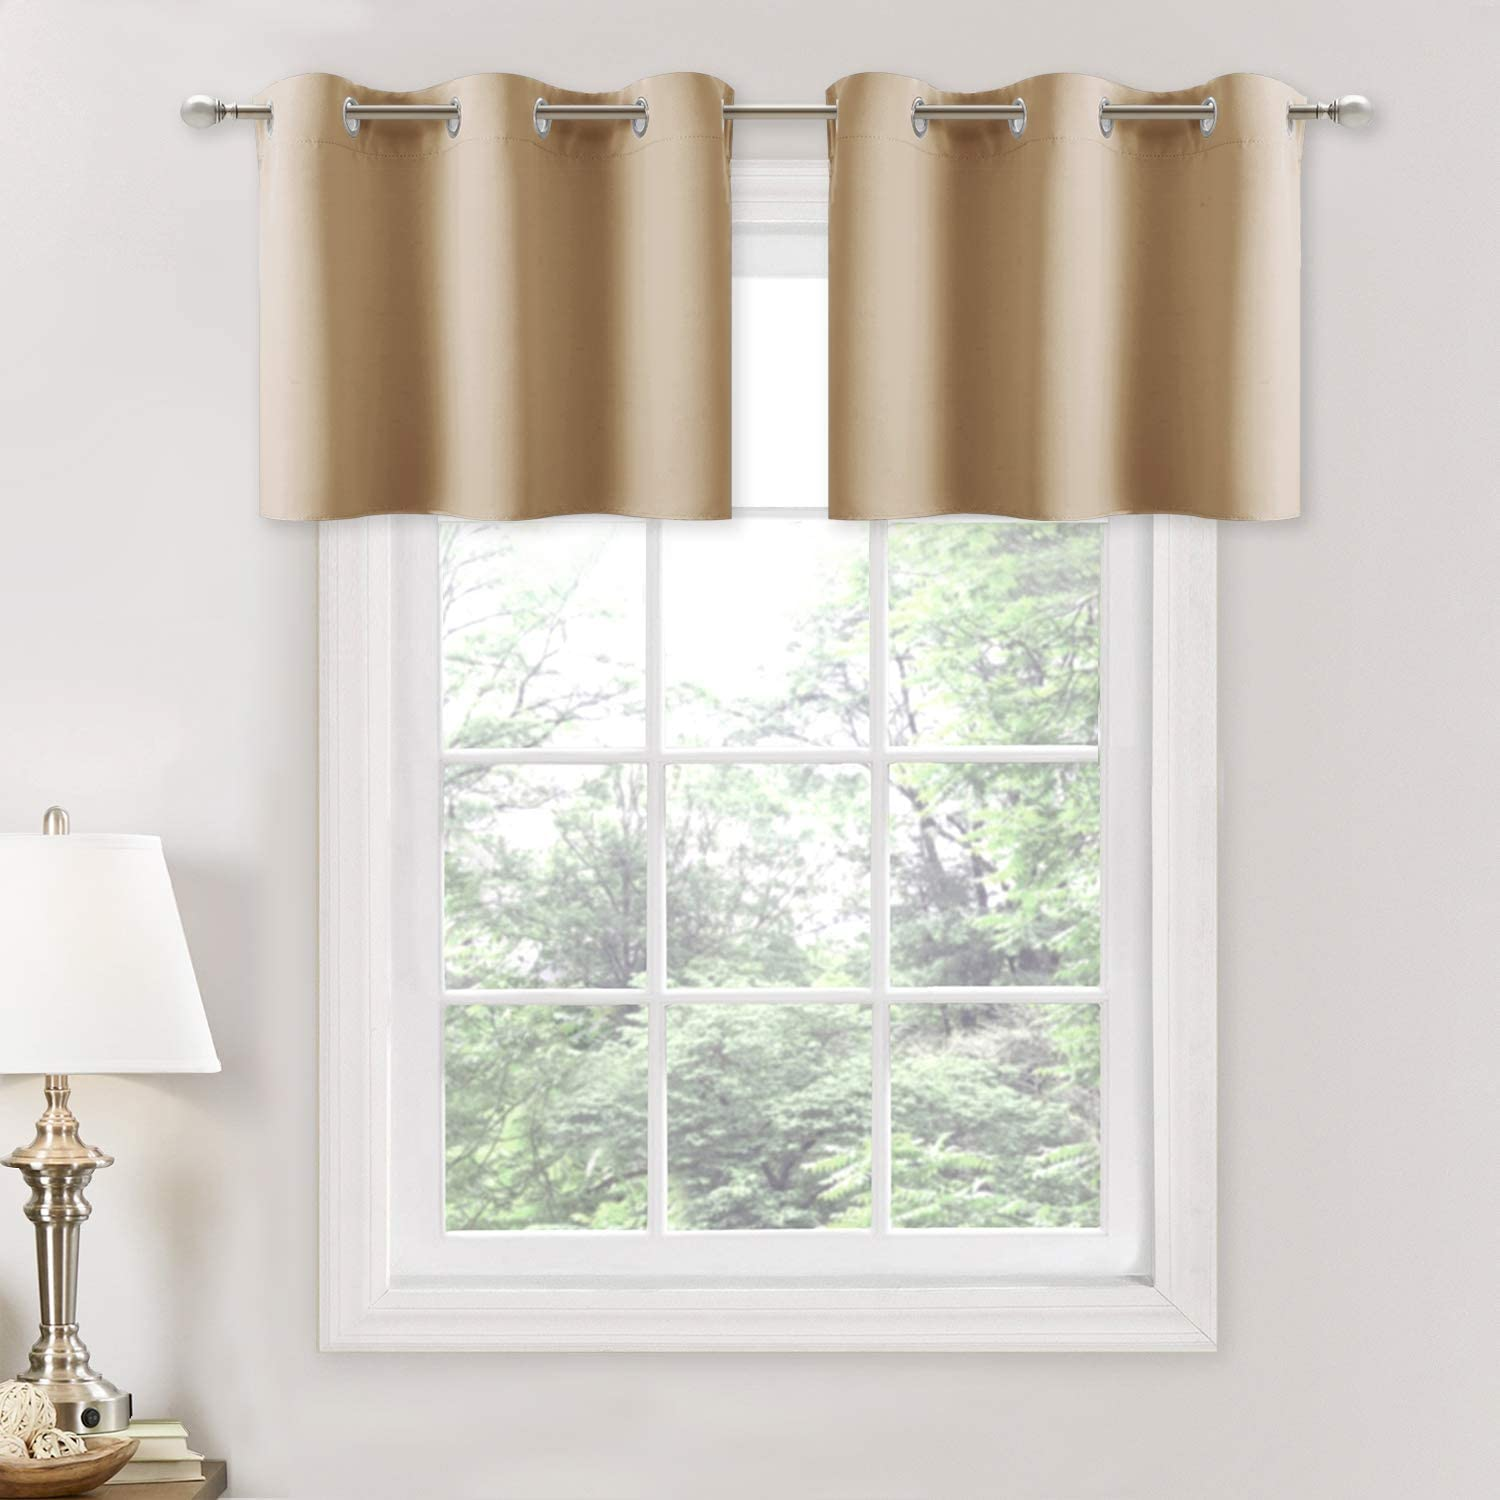 Nicetown Small Window Room Darkening Valances Functional Kitchen Curtain Thermal Insulated Window Treatment Curtains Drapes Biscotti Beige 2 Panels 42w By 18l 1 2 Inches Header Home Kitchen Amazon Com